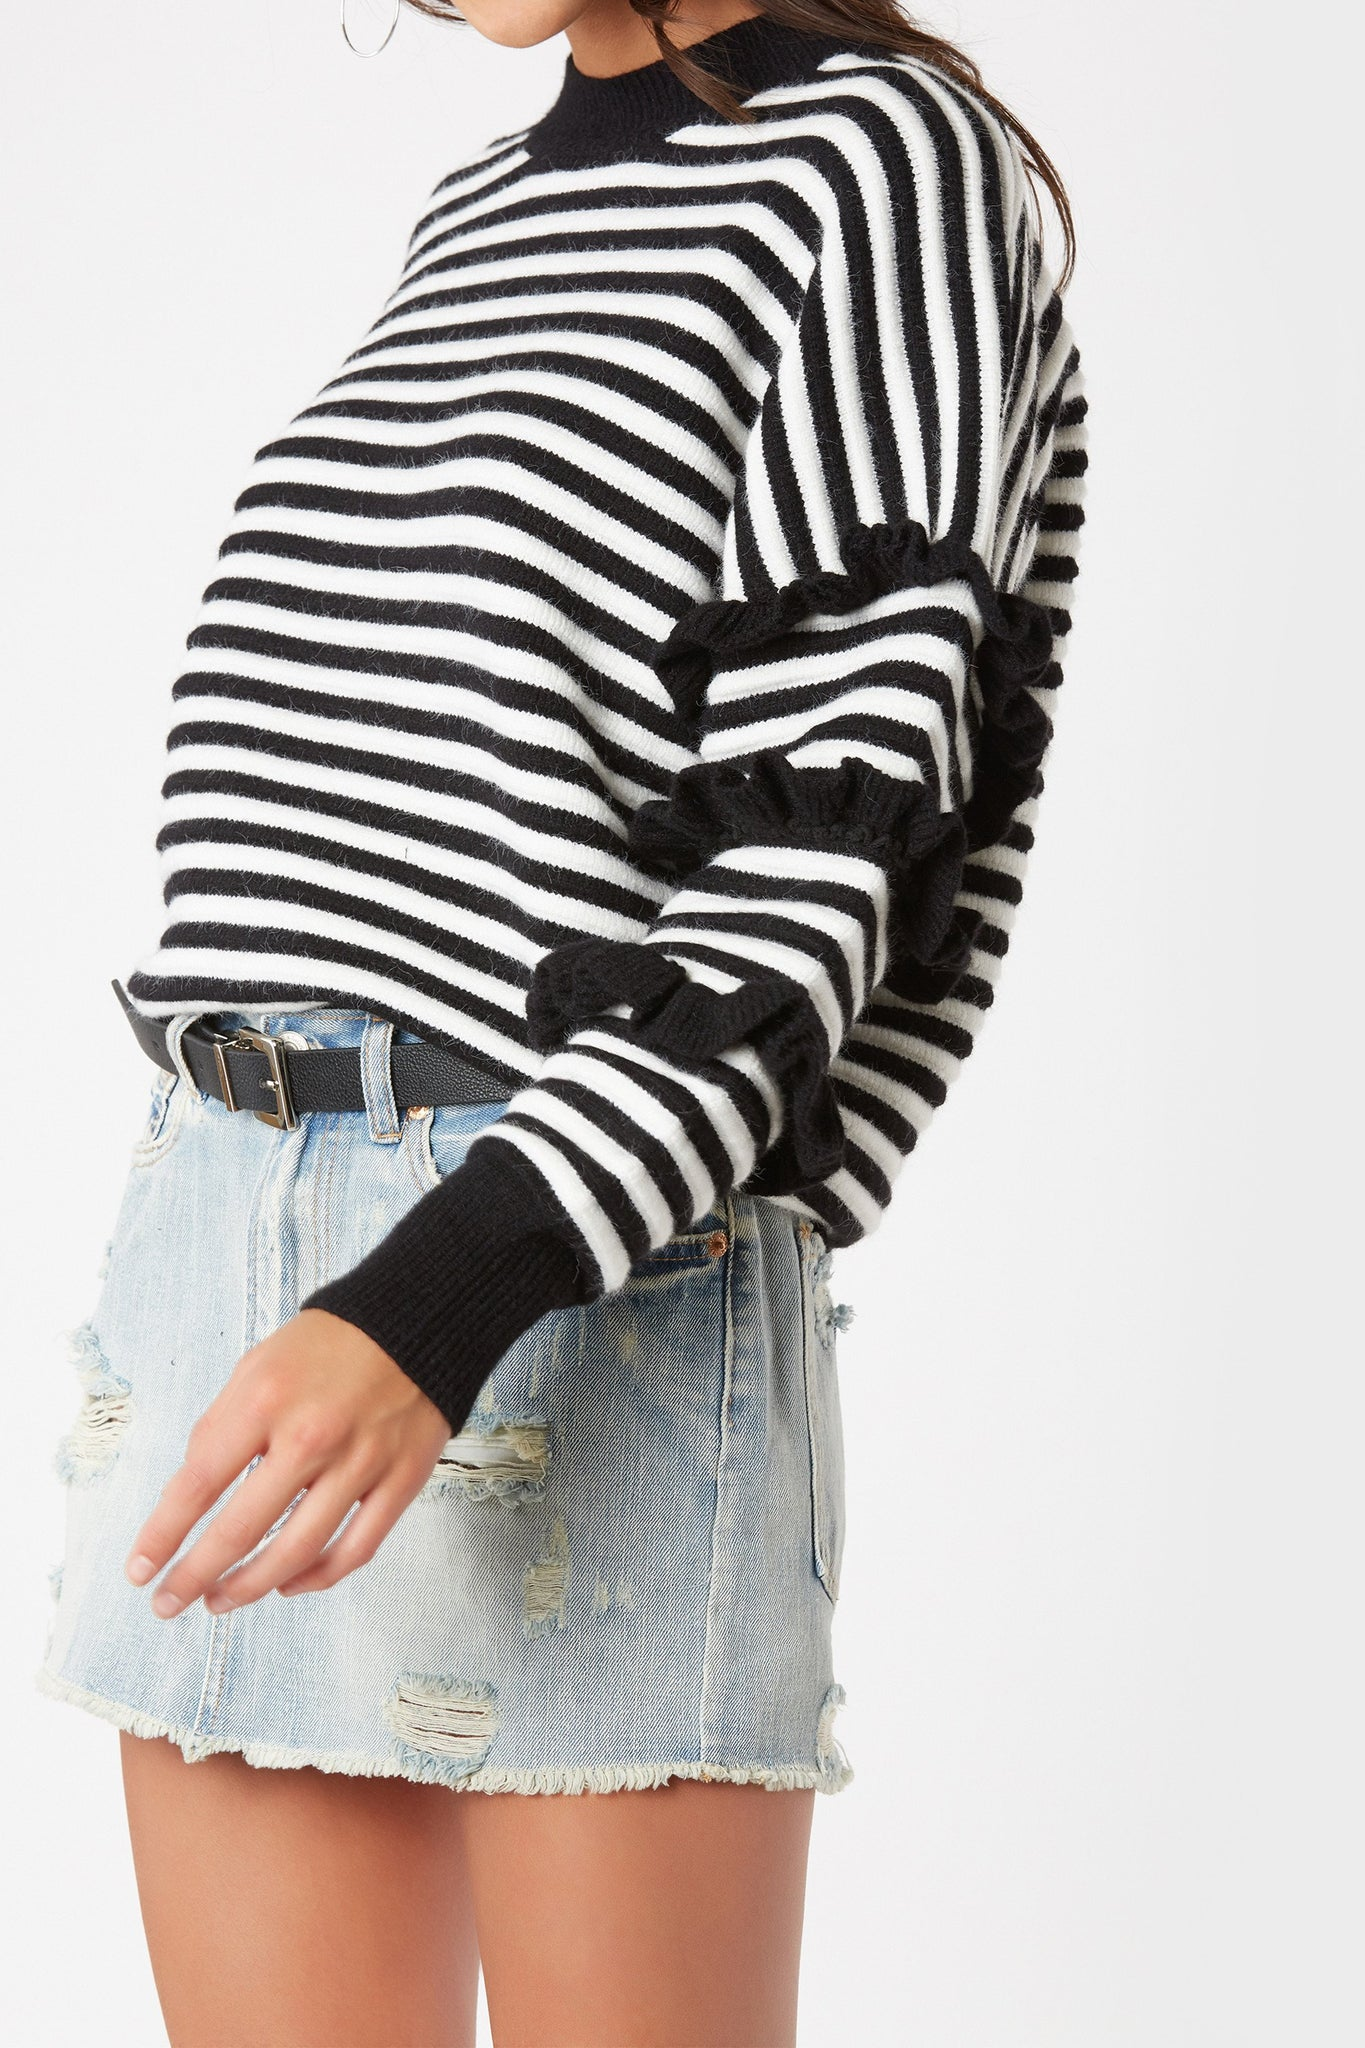 Cozy crew neck sweater with oversized fit. Stripe pattern throughout with ruffle trim detailing on sleeves.